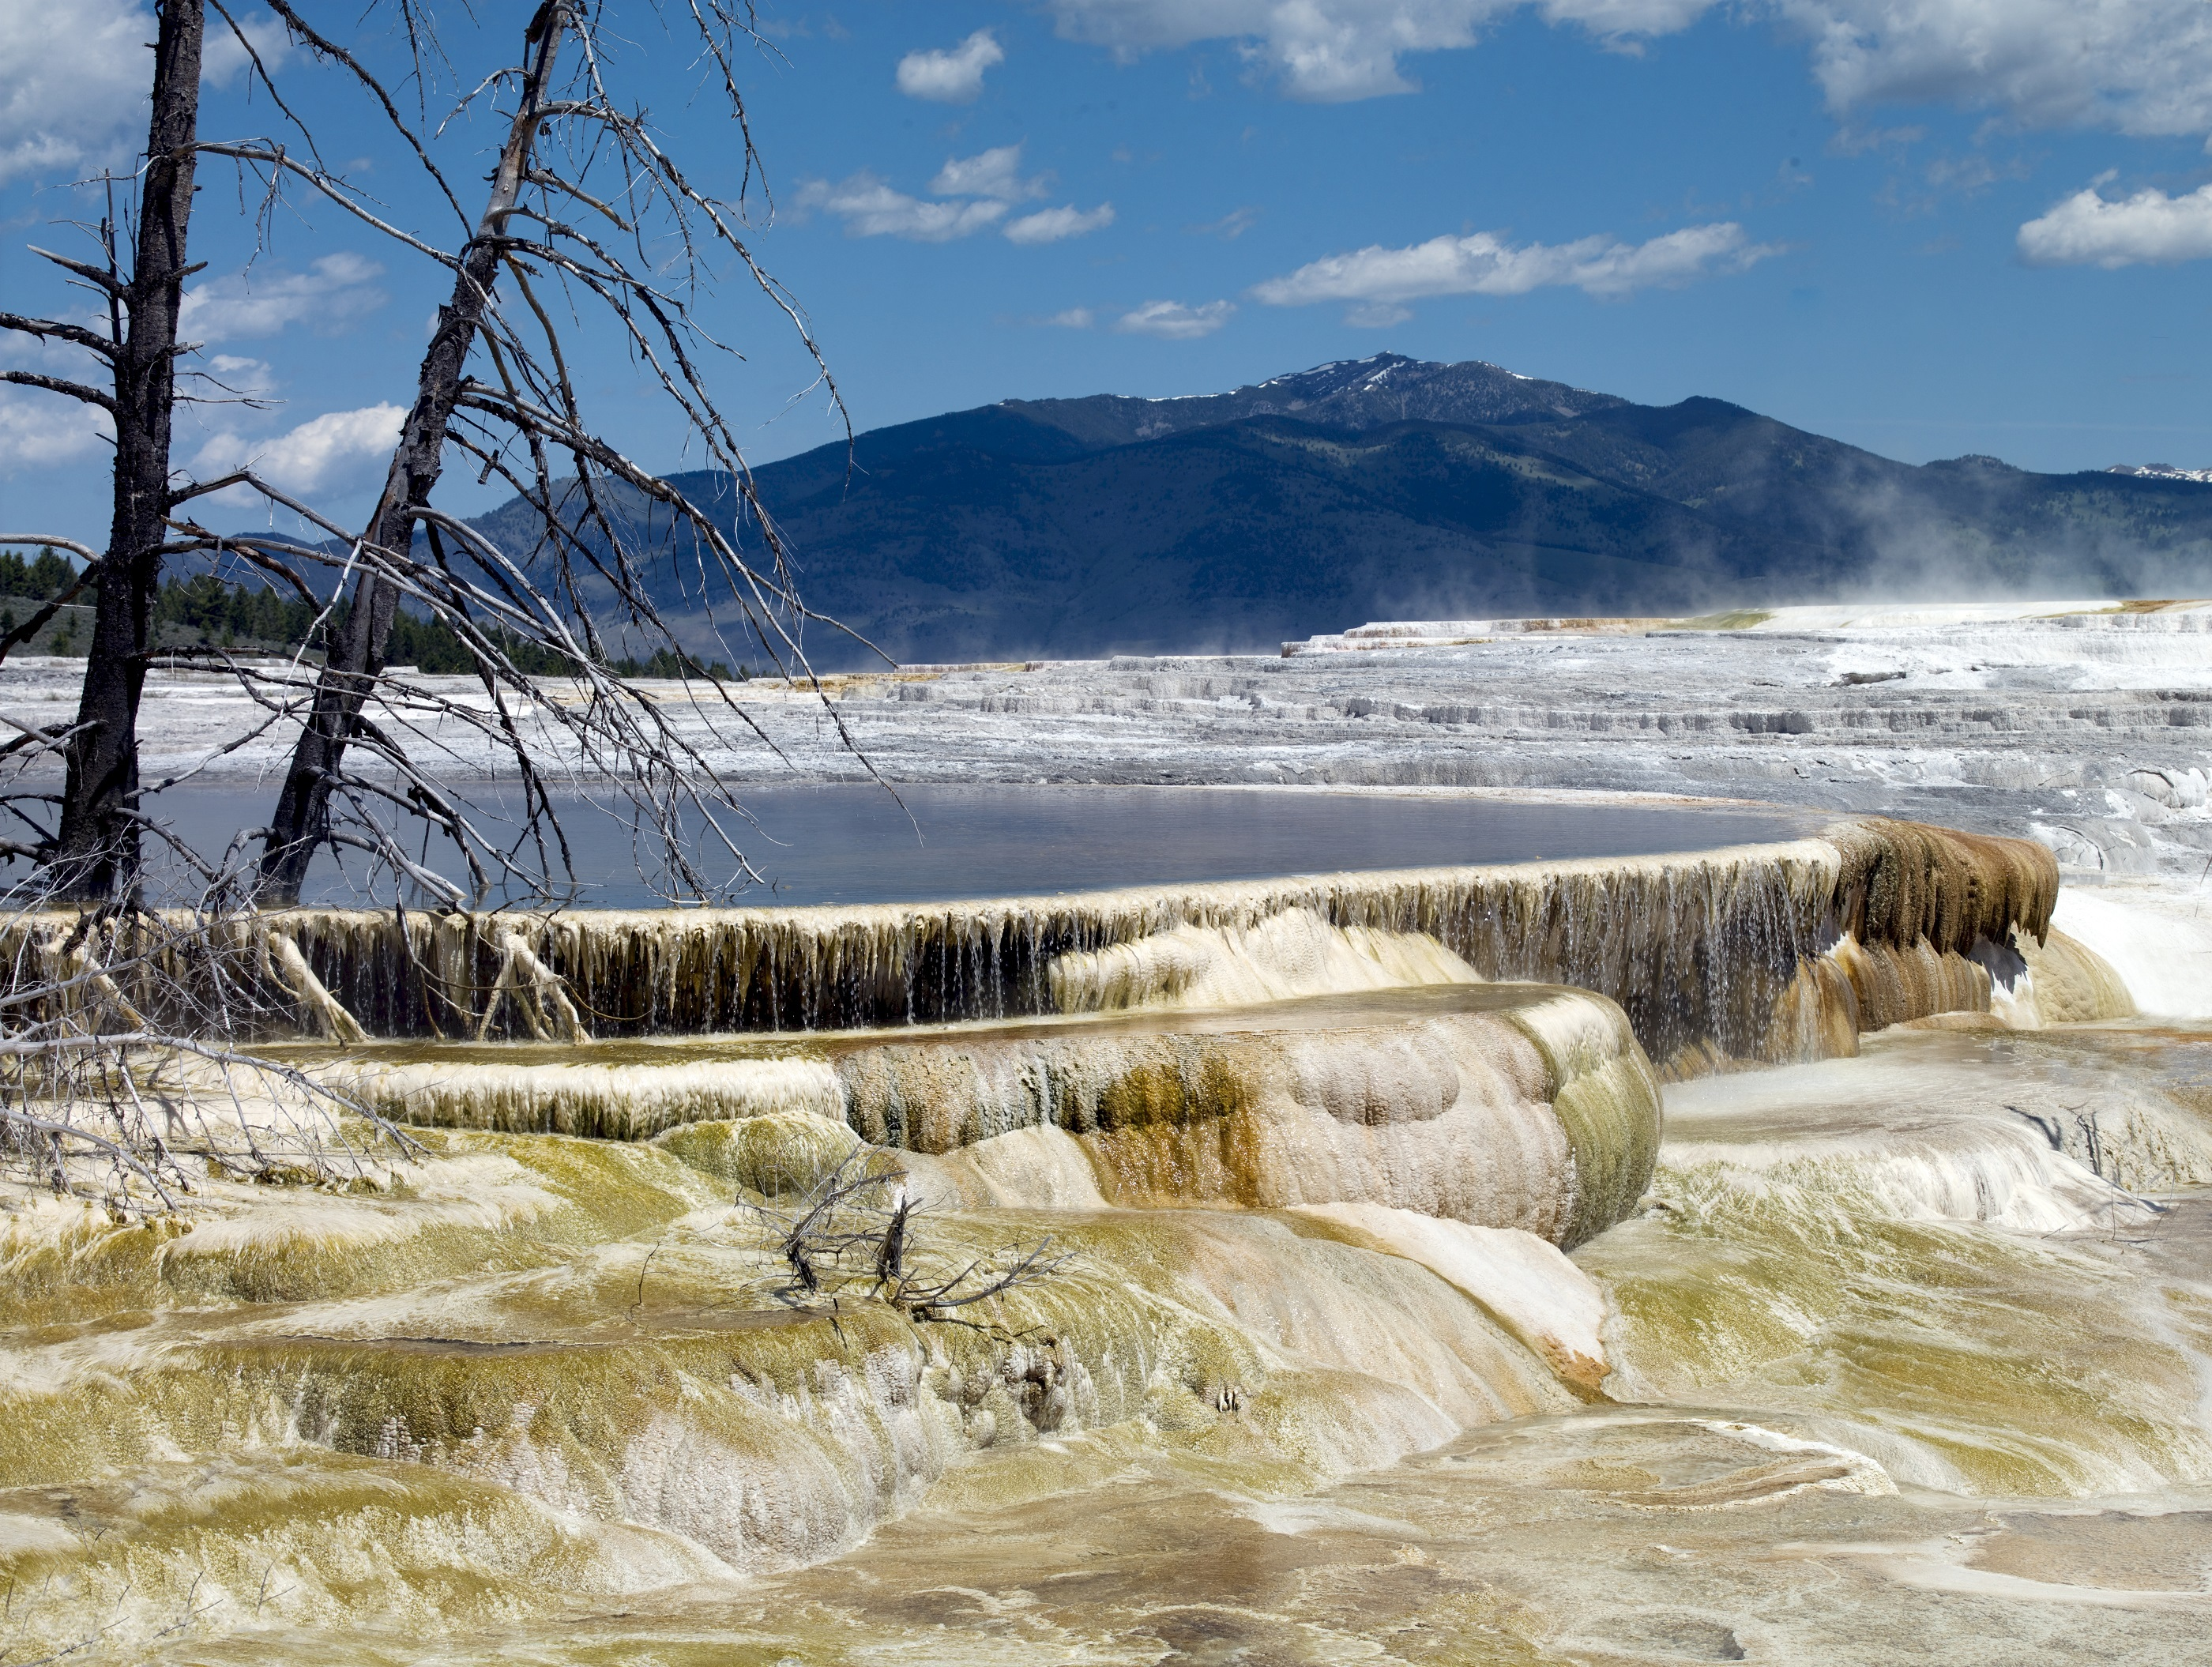 mammoth-hot-springs-1238259